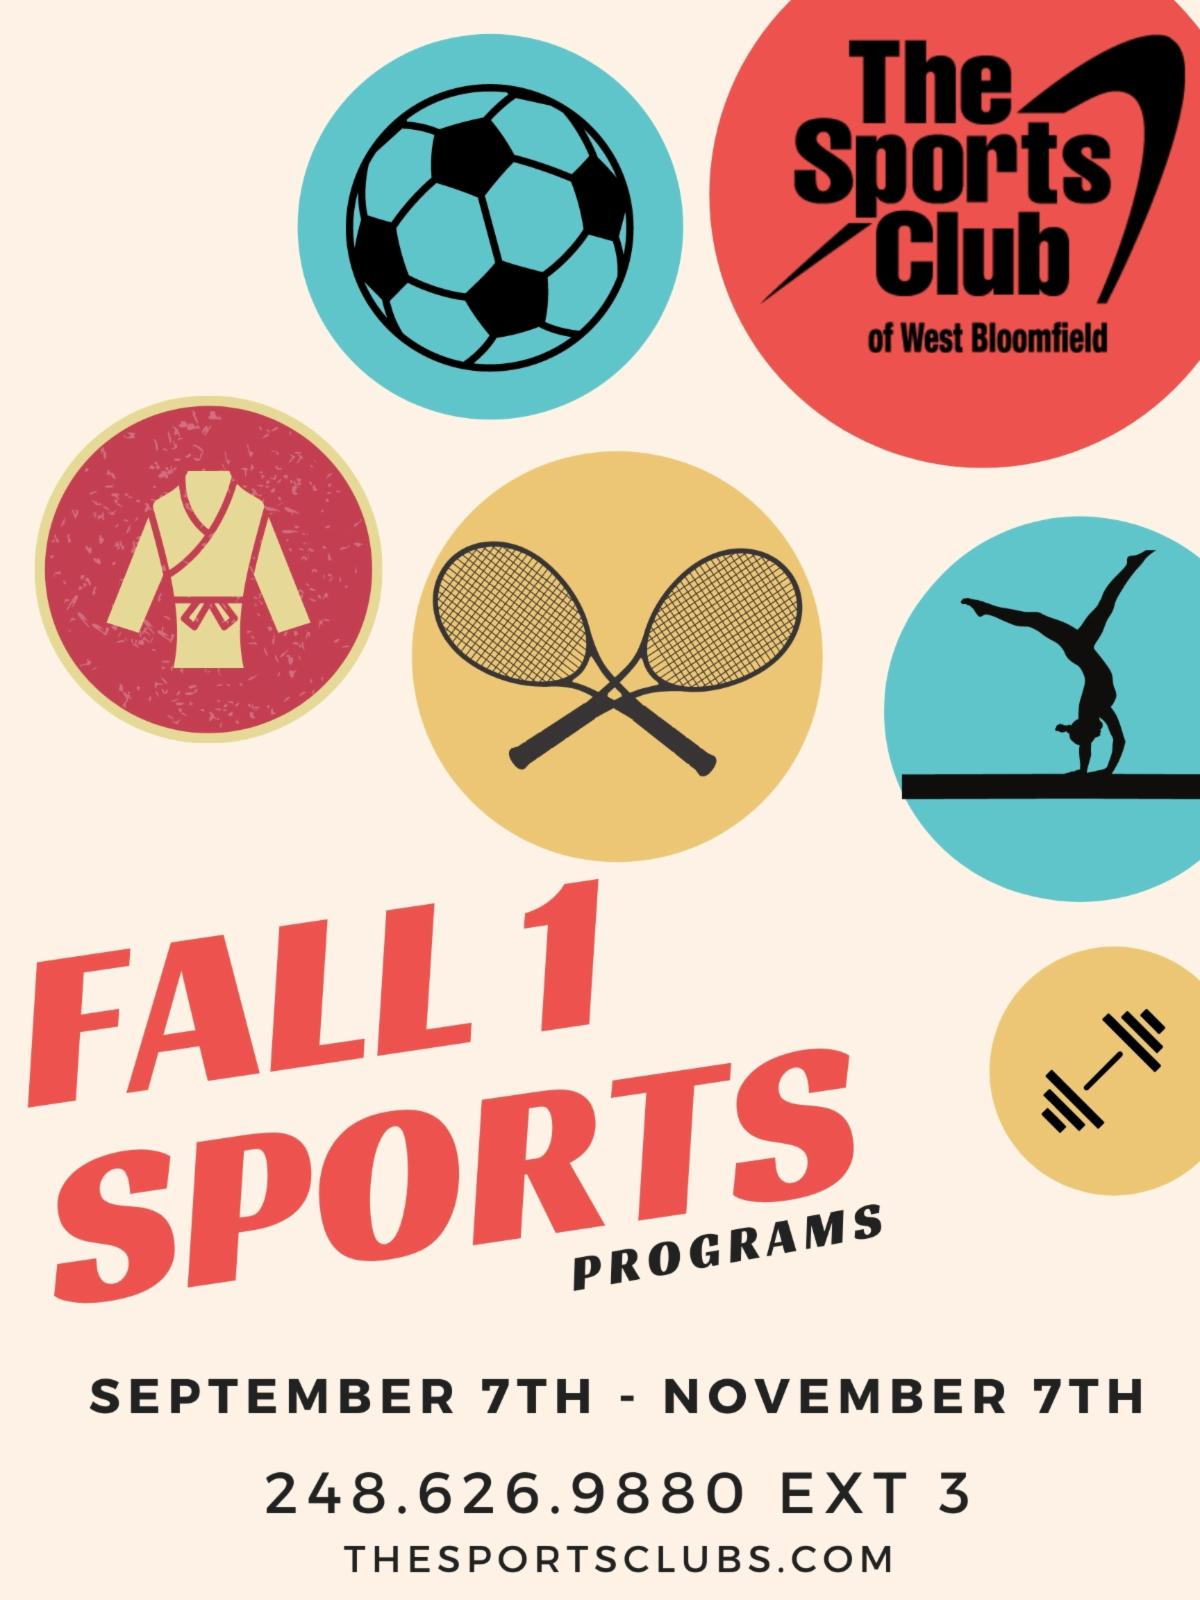 Copy of the sports club of west bloomfield.jpg